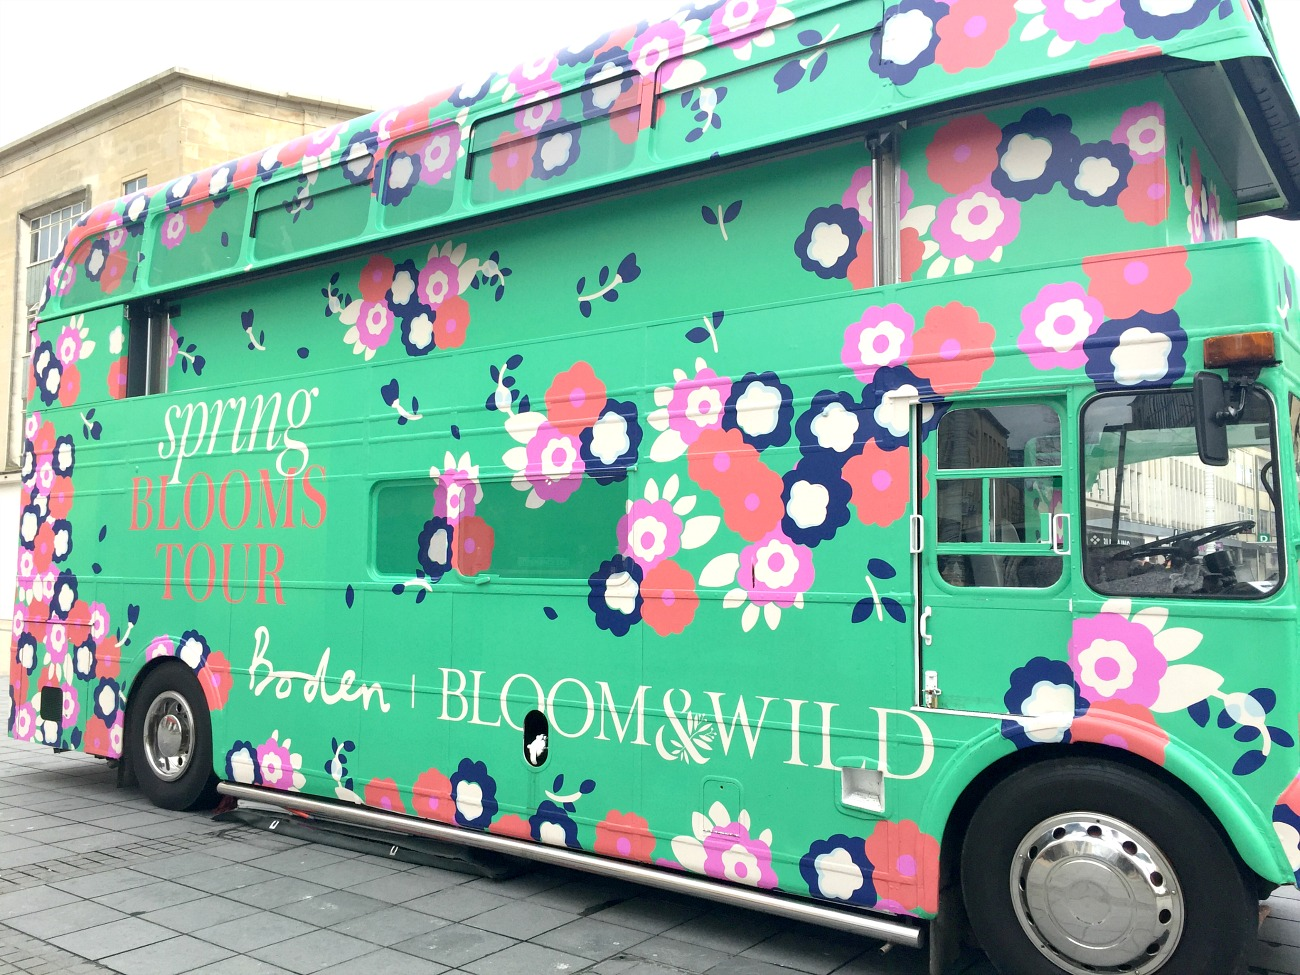 boden clothing, boden code, British Clothing, boden spring bloom tour, bloom & wild, floral dresses, spring dresses, green bus, tour bus, fasion bus, fashion outlet